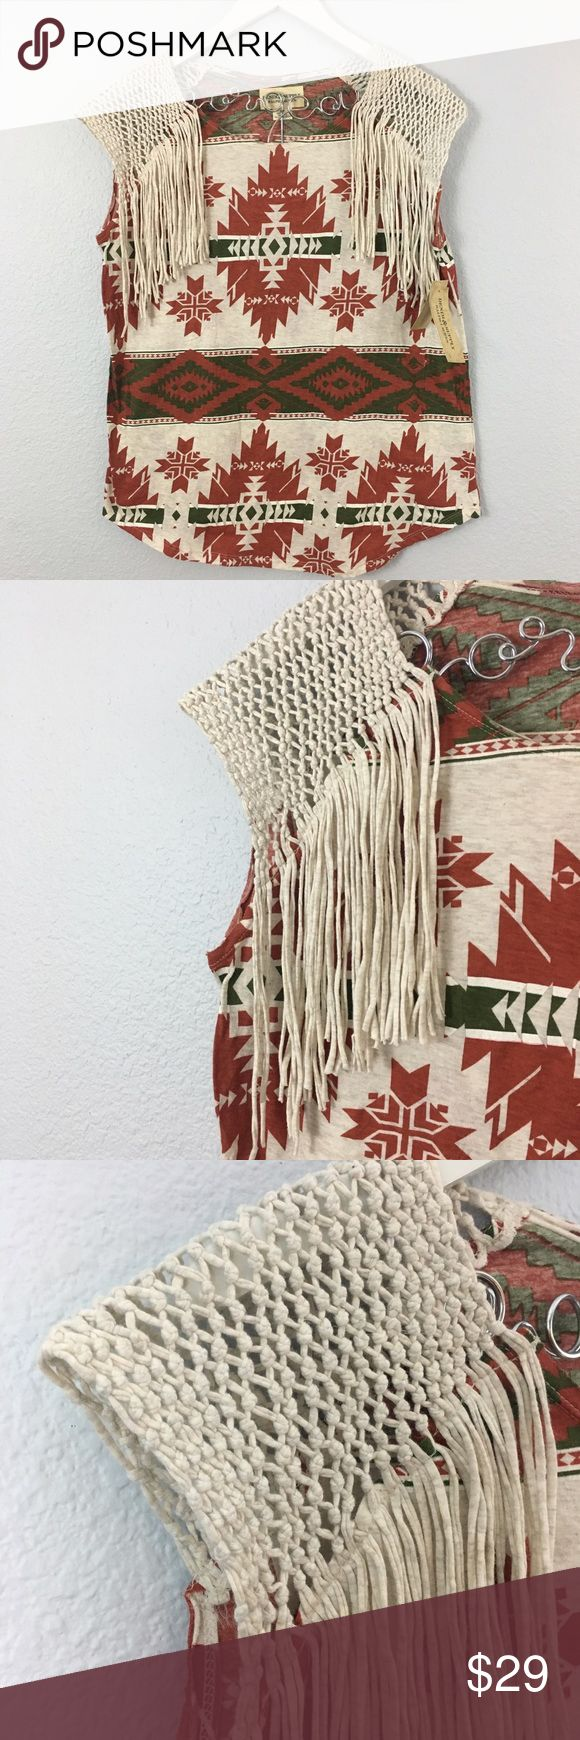 NWT {Ralph Lauren} Boho Western Fringe Top Boho western fringe top from Ralph Lauren Denim and Supply. New with Tags. Smoke and Pet Free Home. Fast shipping  Denim & Supply Ralph Lauren Tops Tees - Short Sleeve